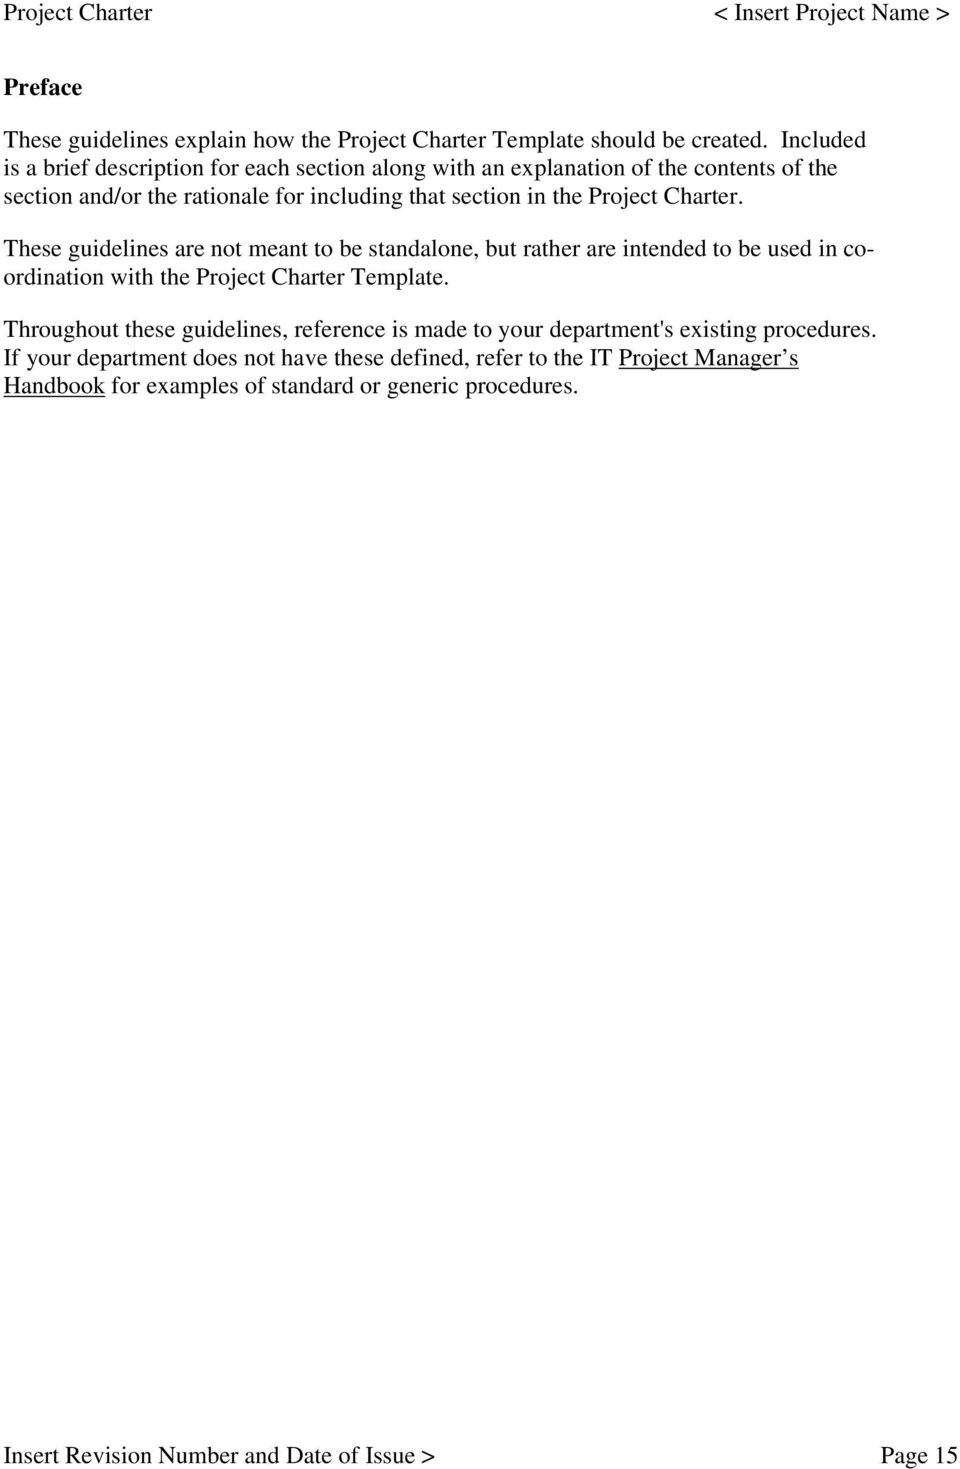 Project Charter Guide Pdf